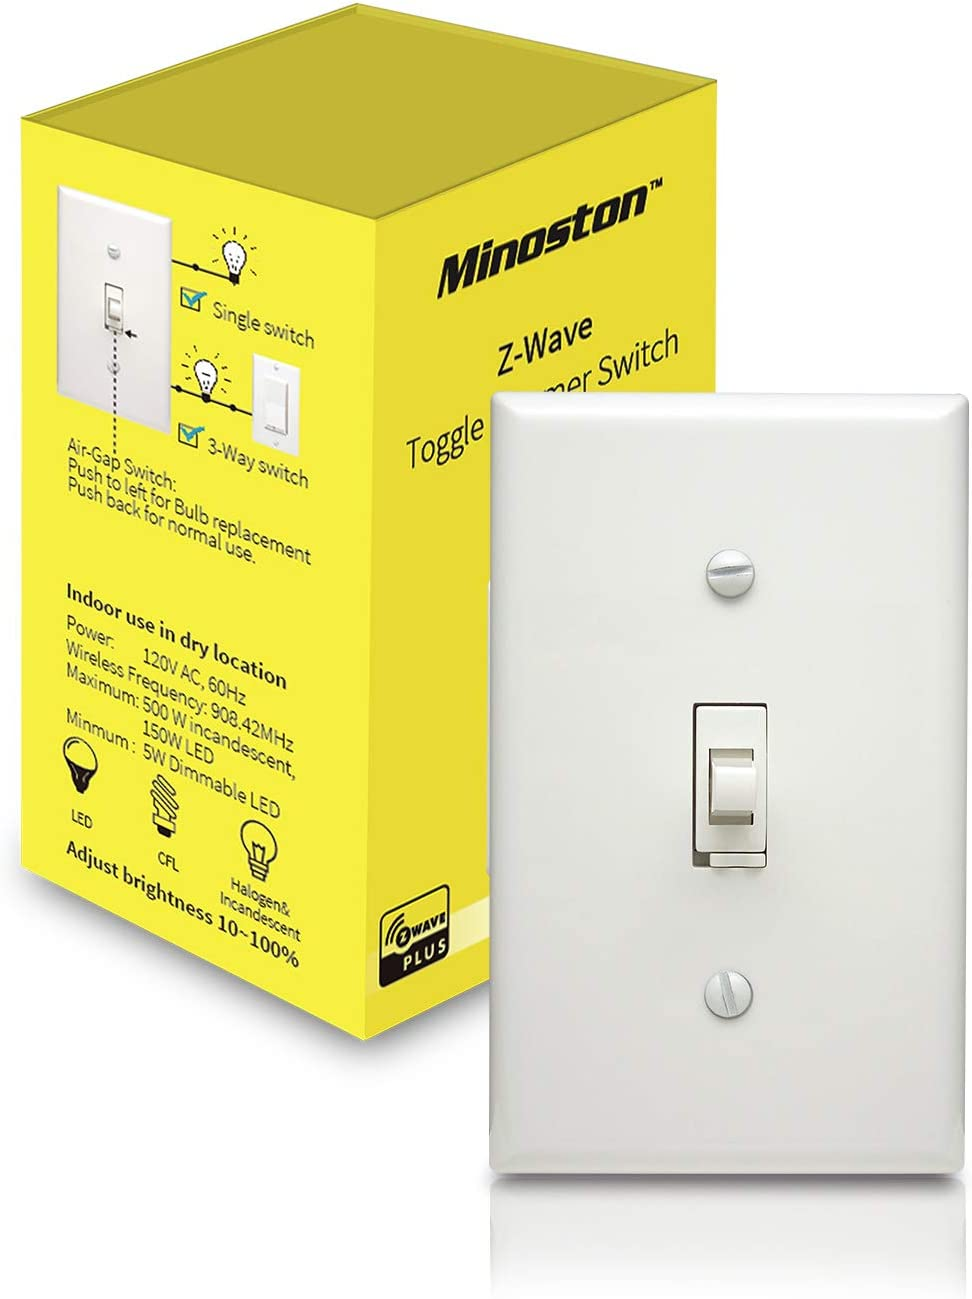 Z-Wave Plus Smart Dimmer Light Switch, In Wall, Toggle, Built-in Signal Repeater/Range Extender, 3-Way Installation, Works With SmartThings, Wink, Z-Wave Hub Required, White-(MS13Z)